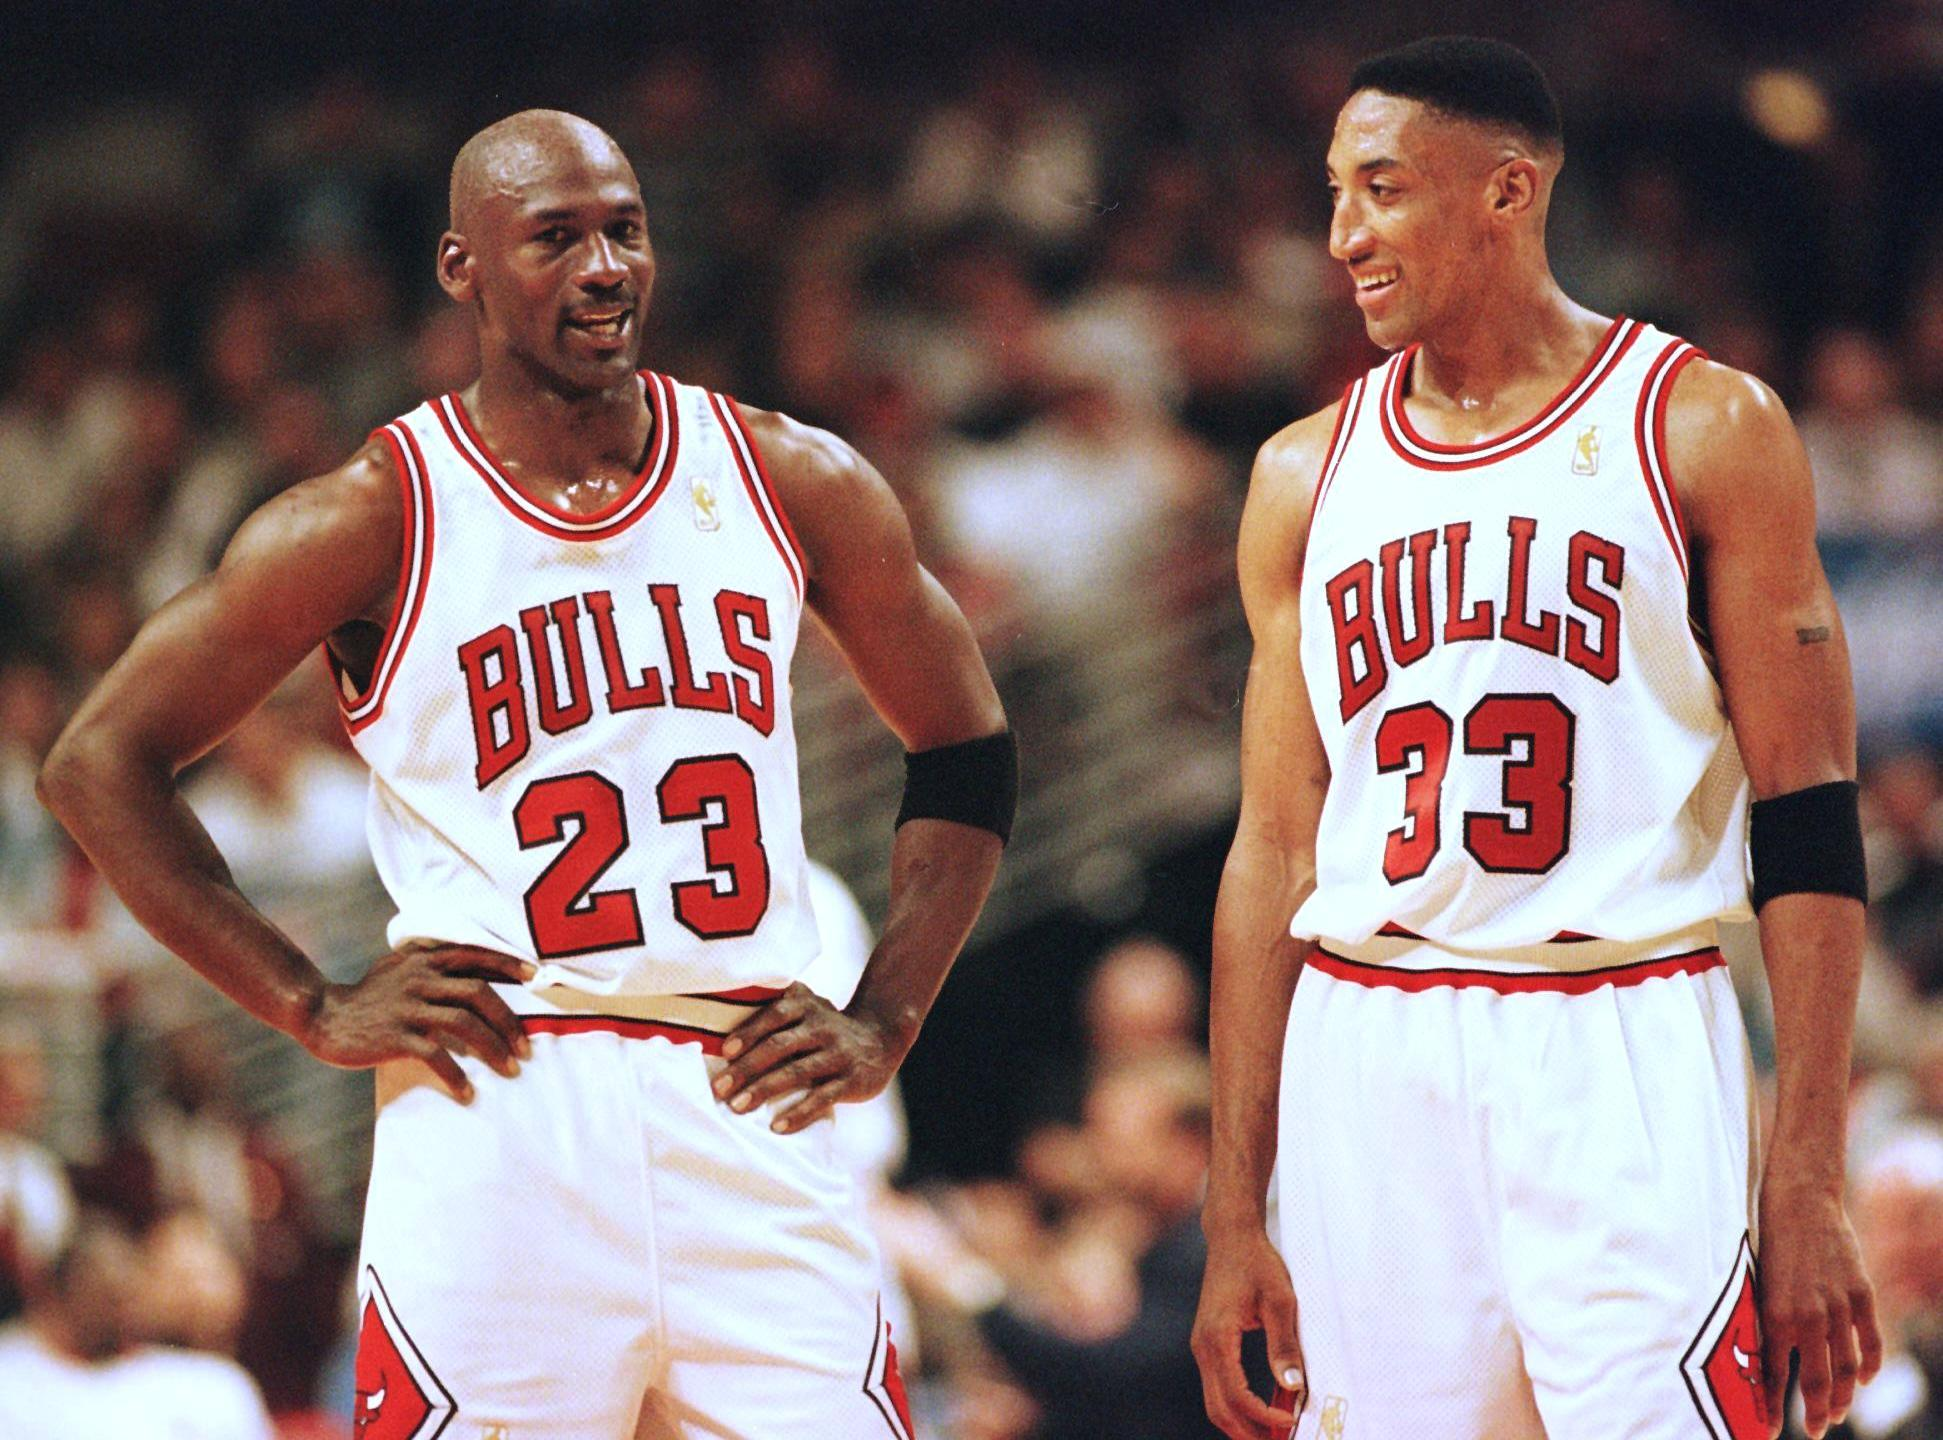 Michael Jordan (L) and Scottie Pippen